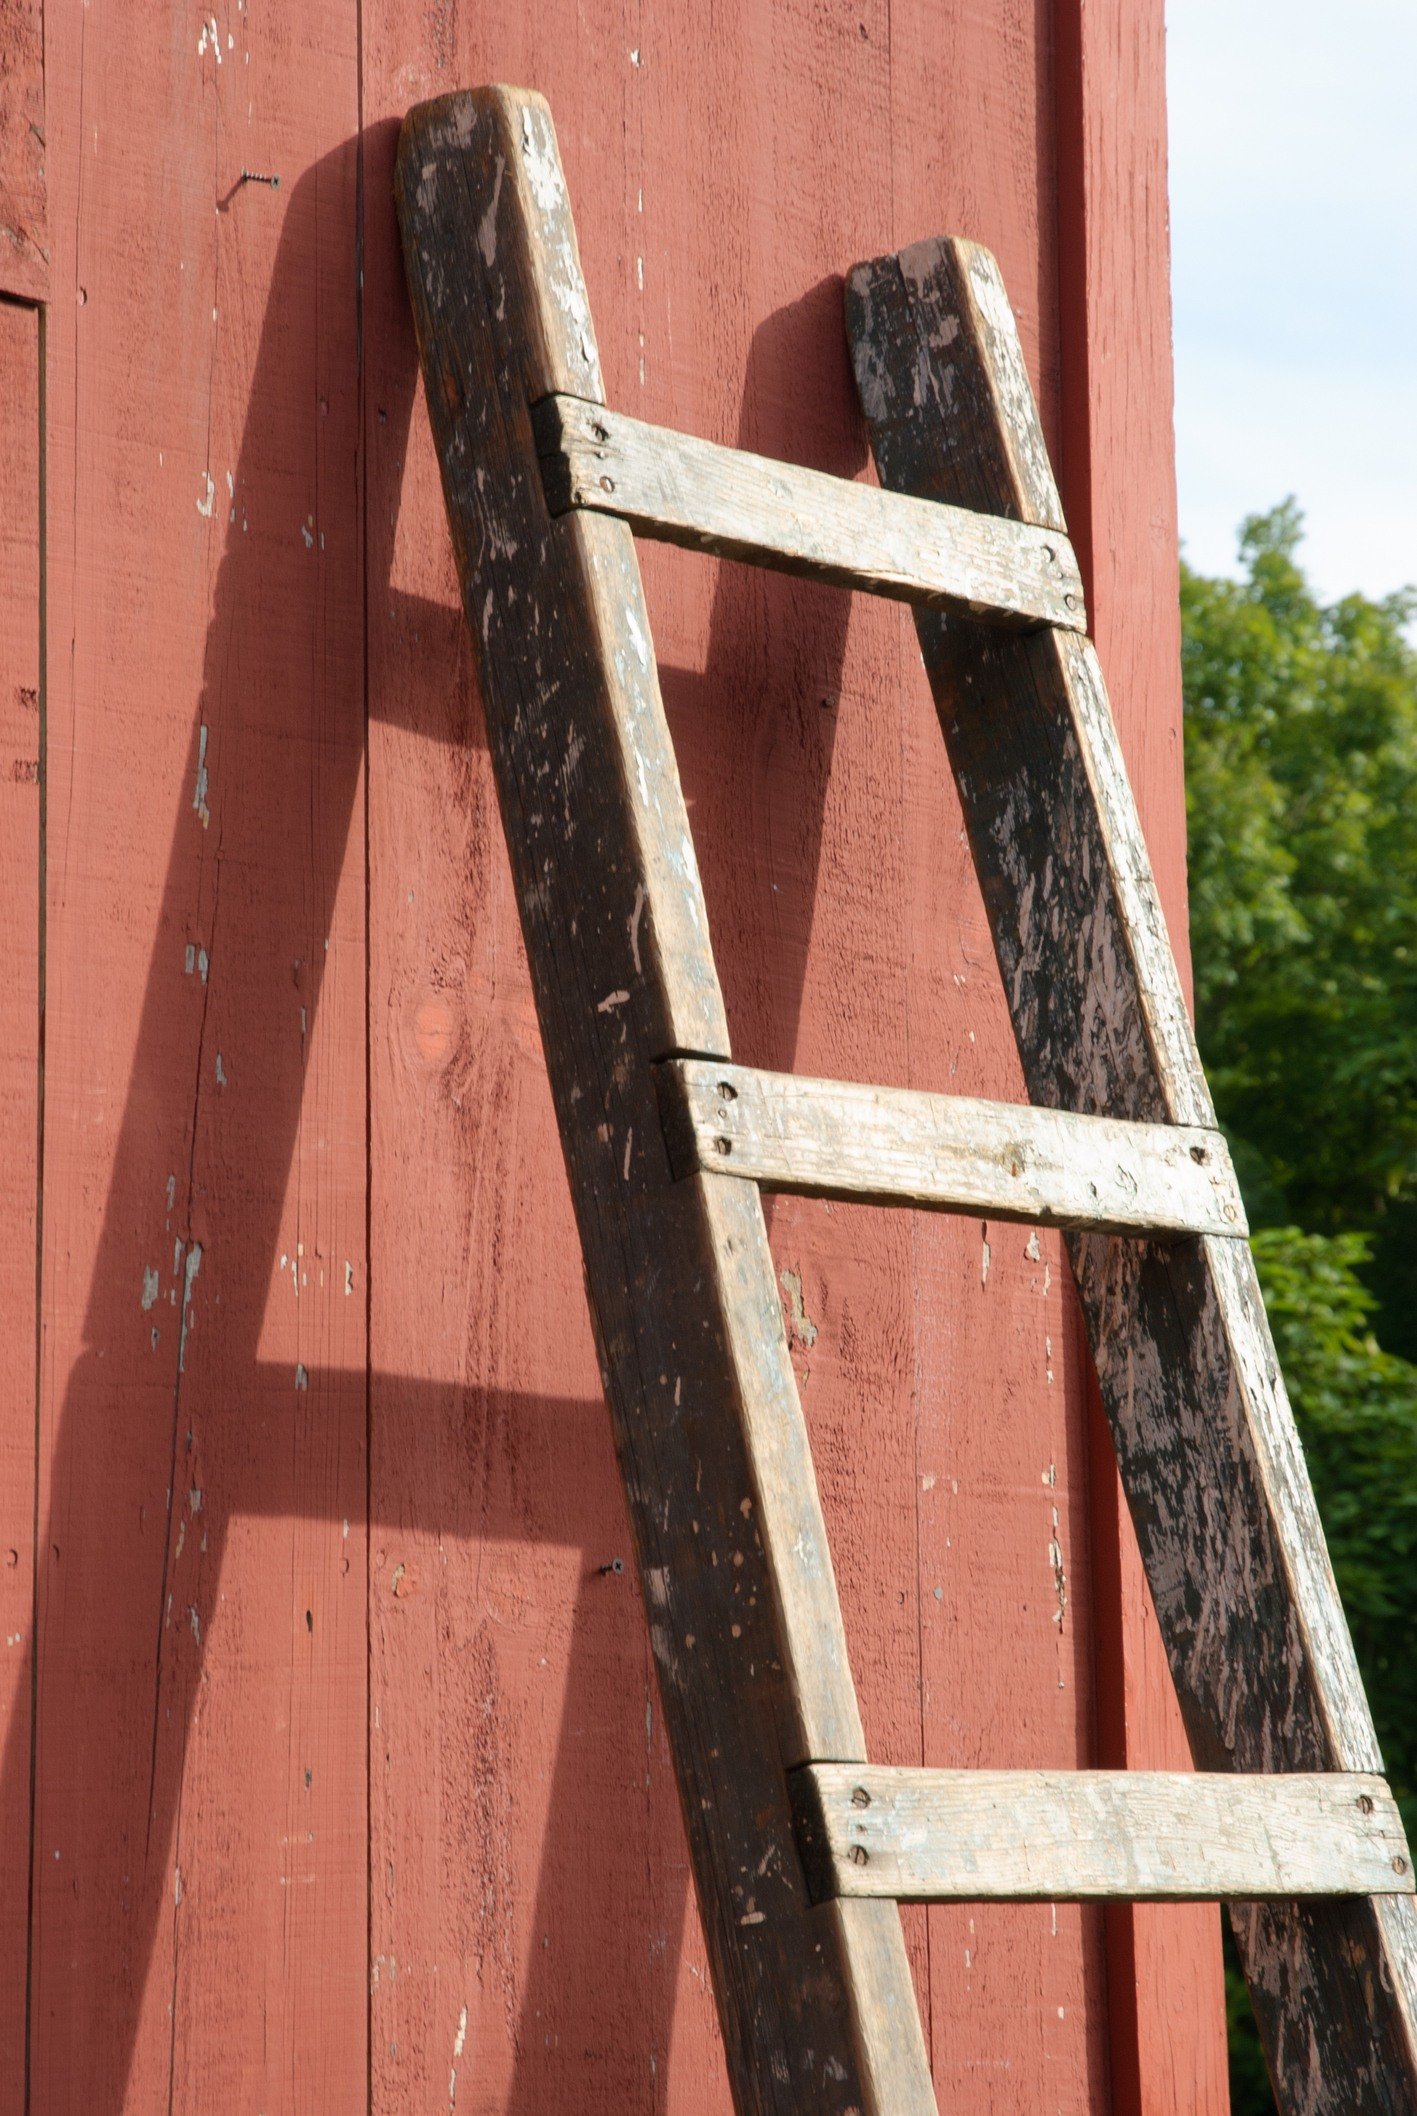 Wooden ladder against wall